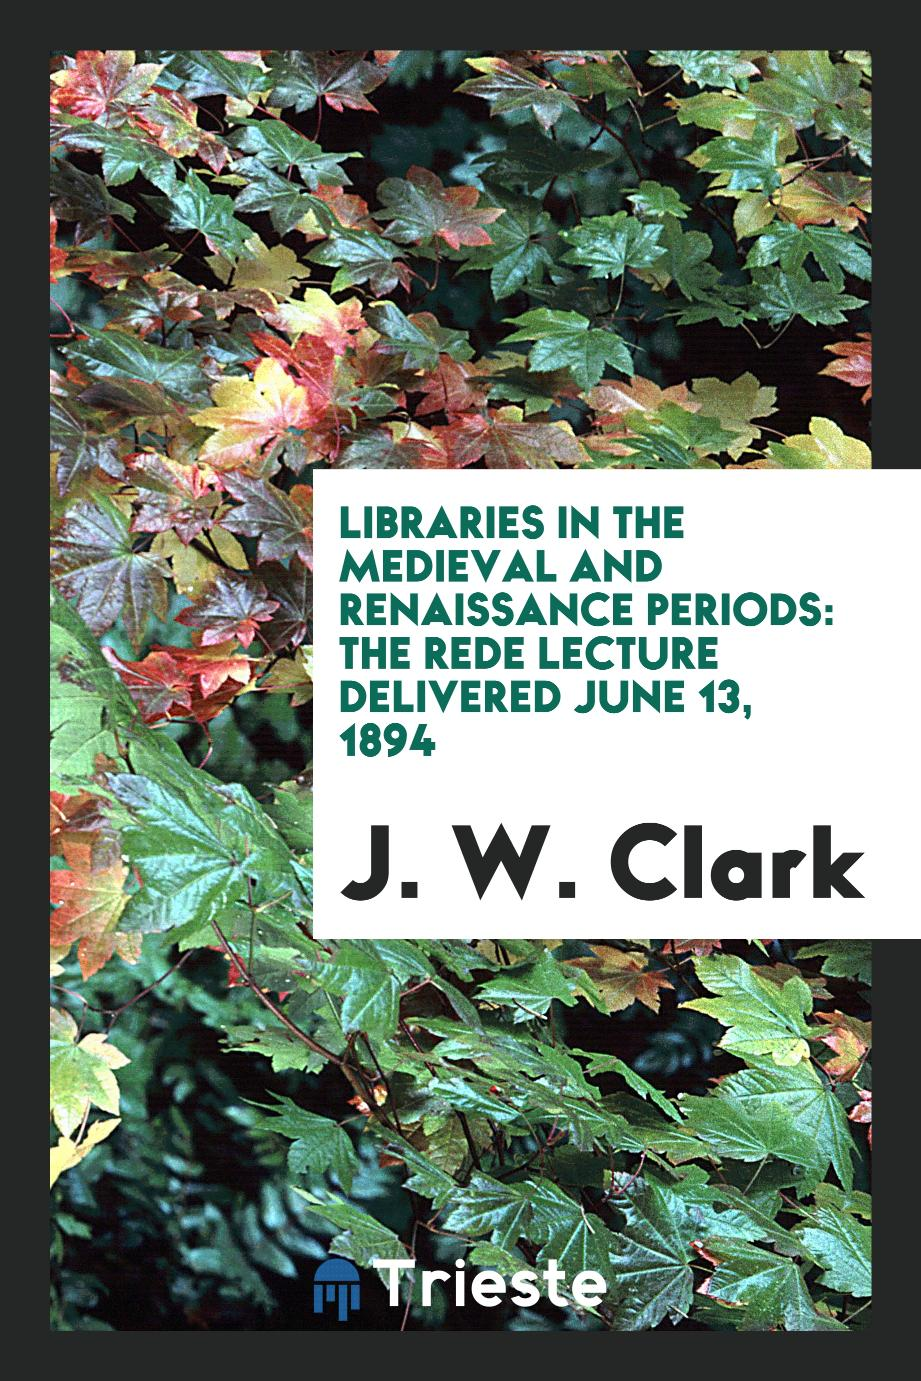 Libraries in the Medieval and Renaissance Periods: The Rede Lecture Delivered June 13, 1894